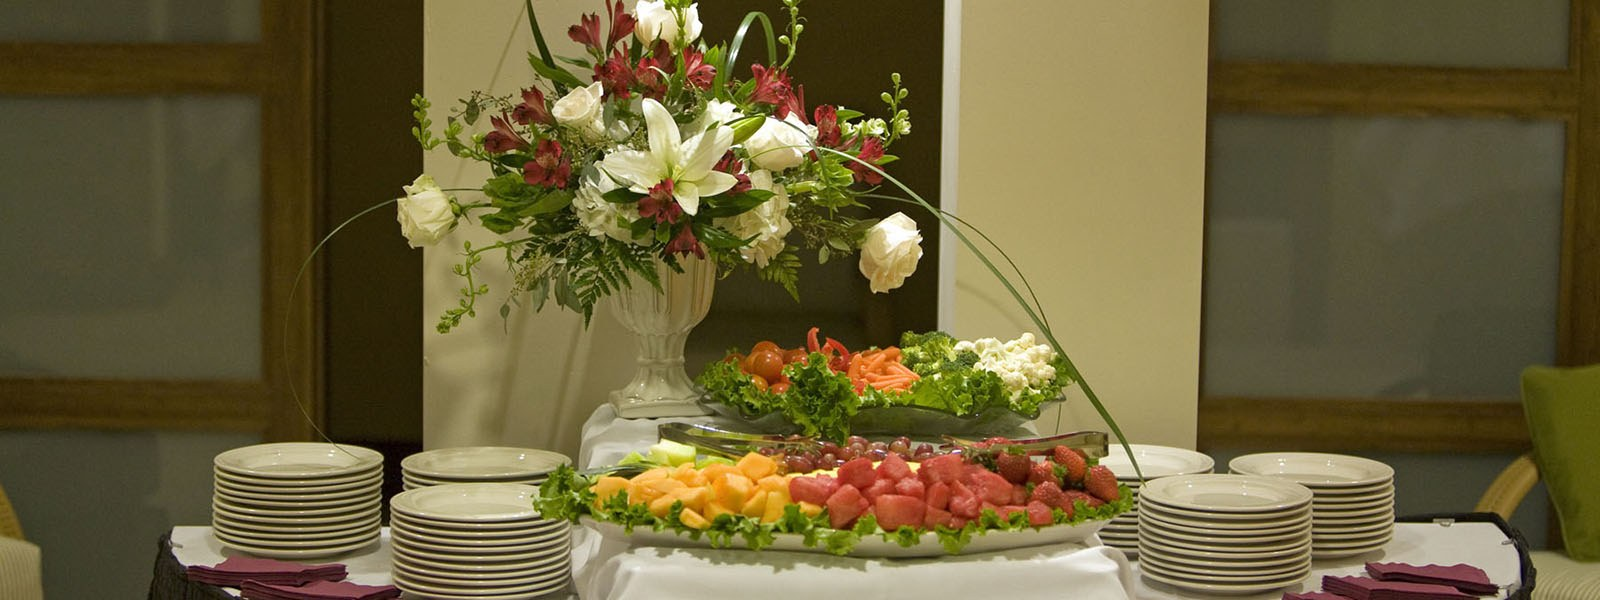 table of plates and flowers for wedding event venue